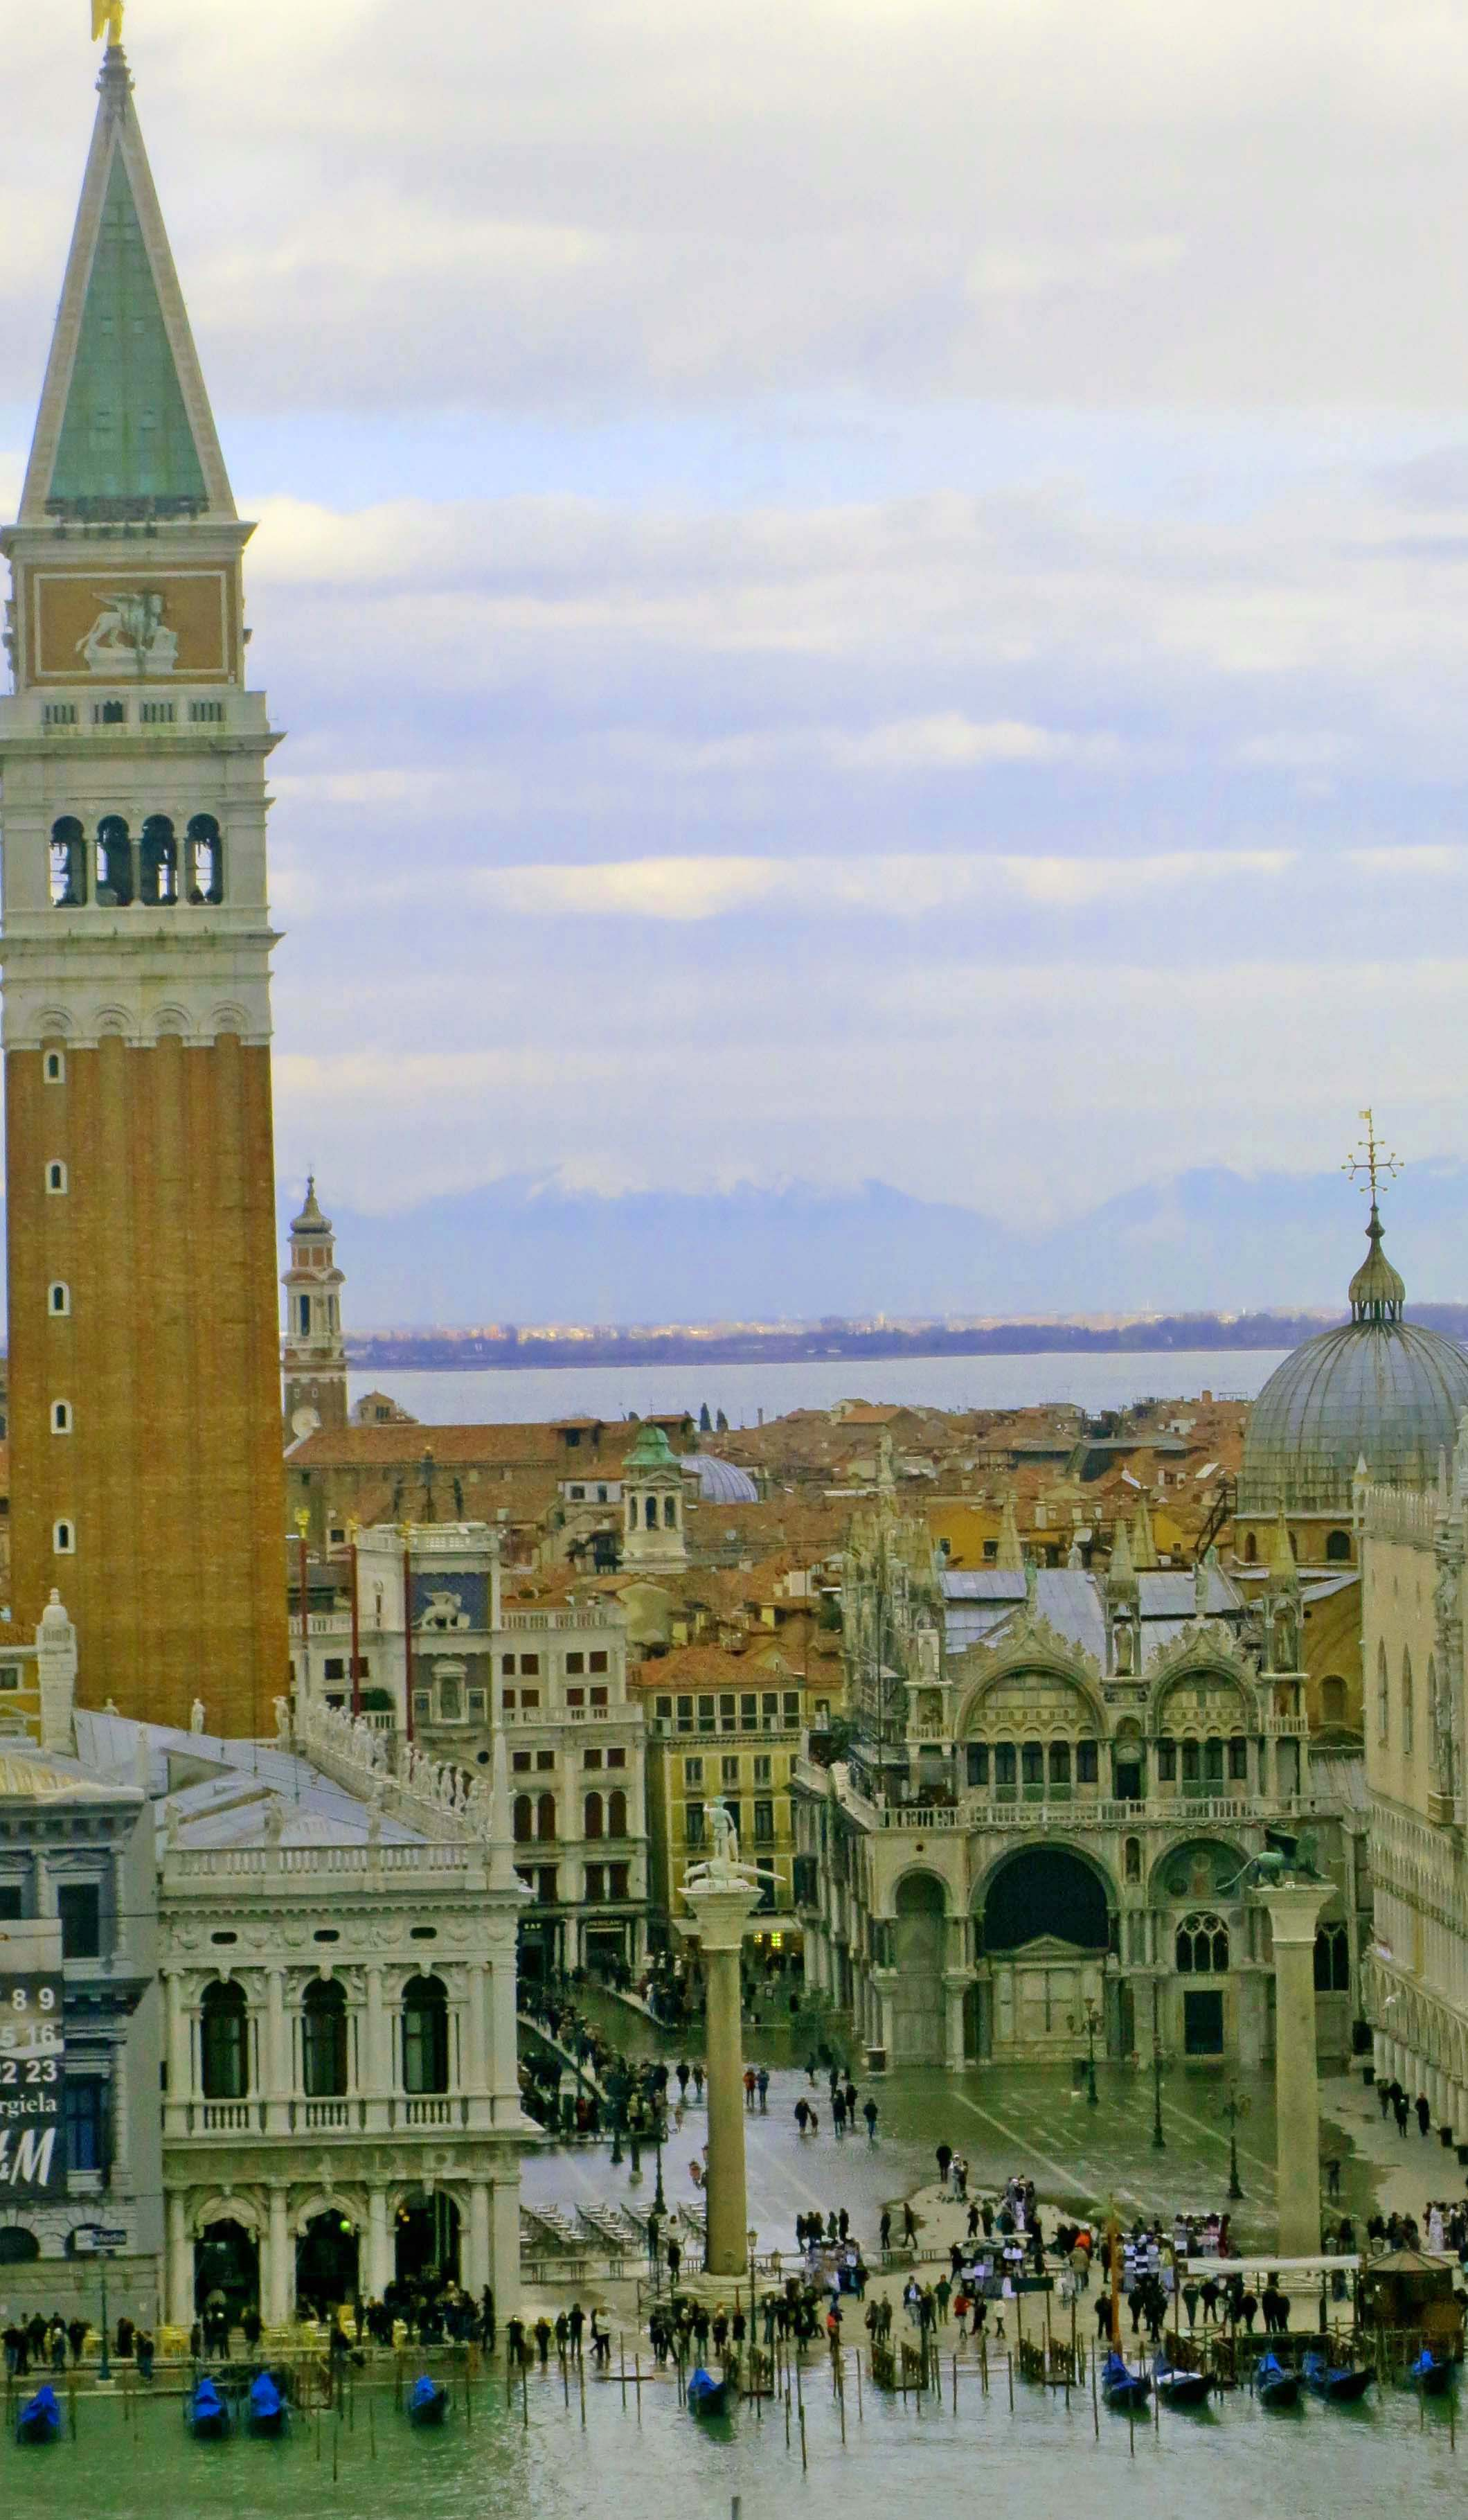 Looking down on St. Mark's Square. The Campanile is on the left, St. Mark's Basilica is on the right behind the Doges Palace.